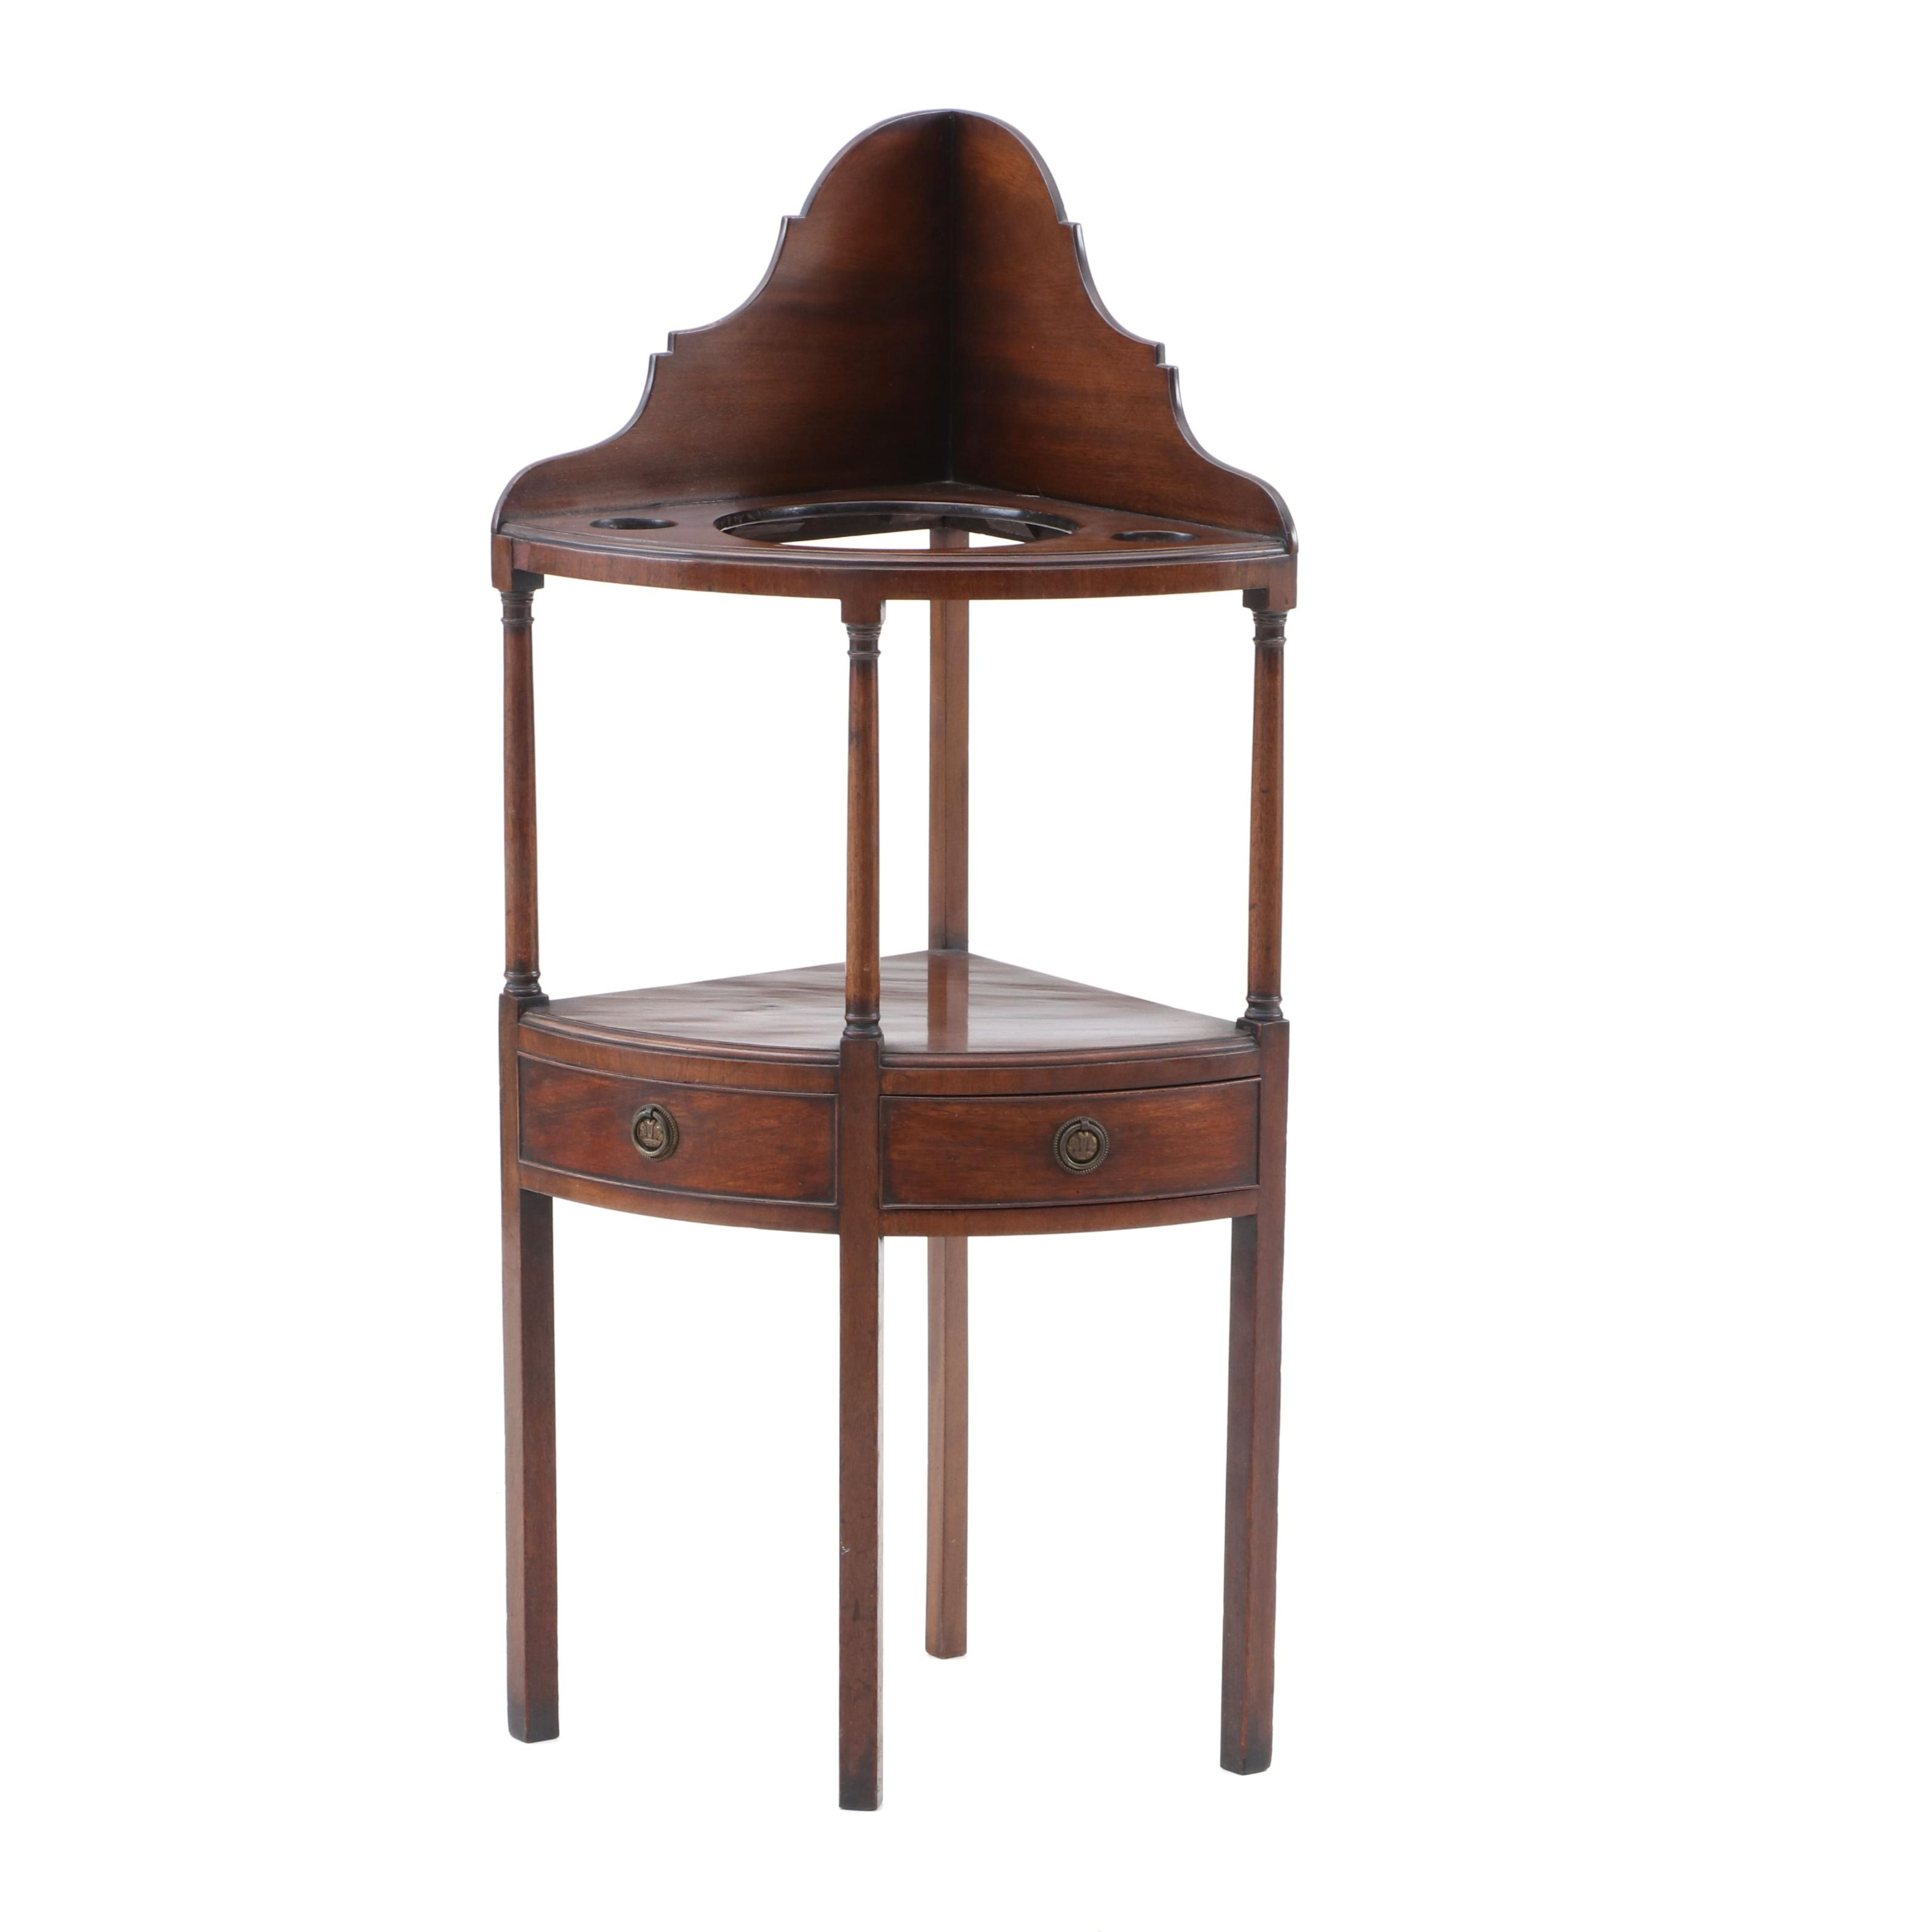 Federal Mahogany Corner Washstand, Early 19th Century